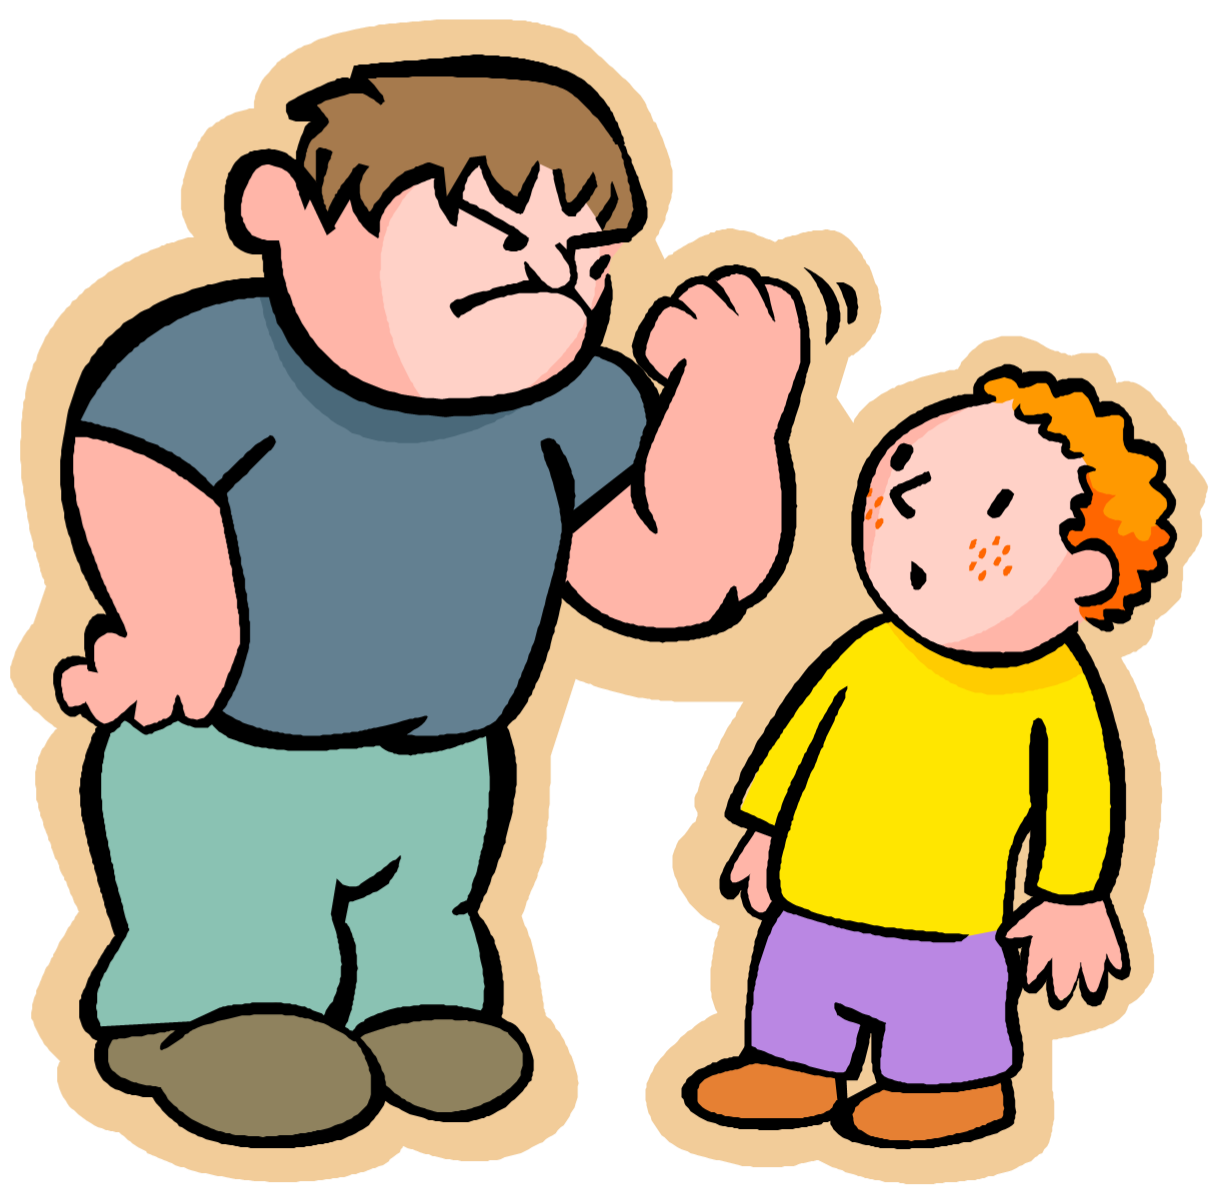 Bullying clipart physical bullying. The devastating impact of